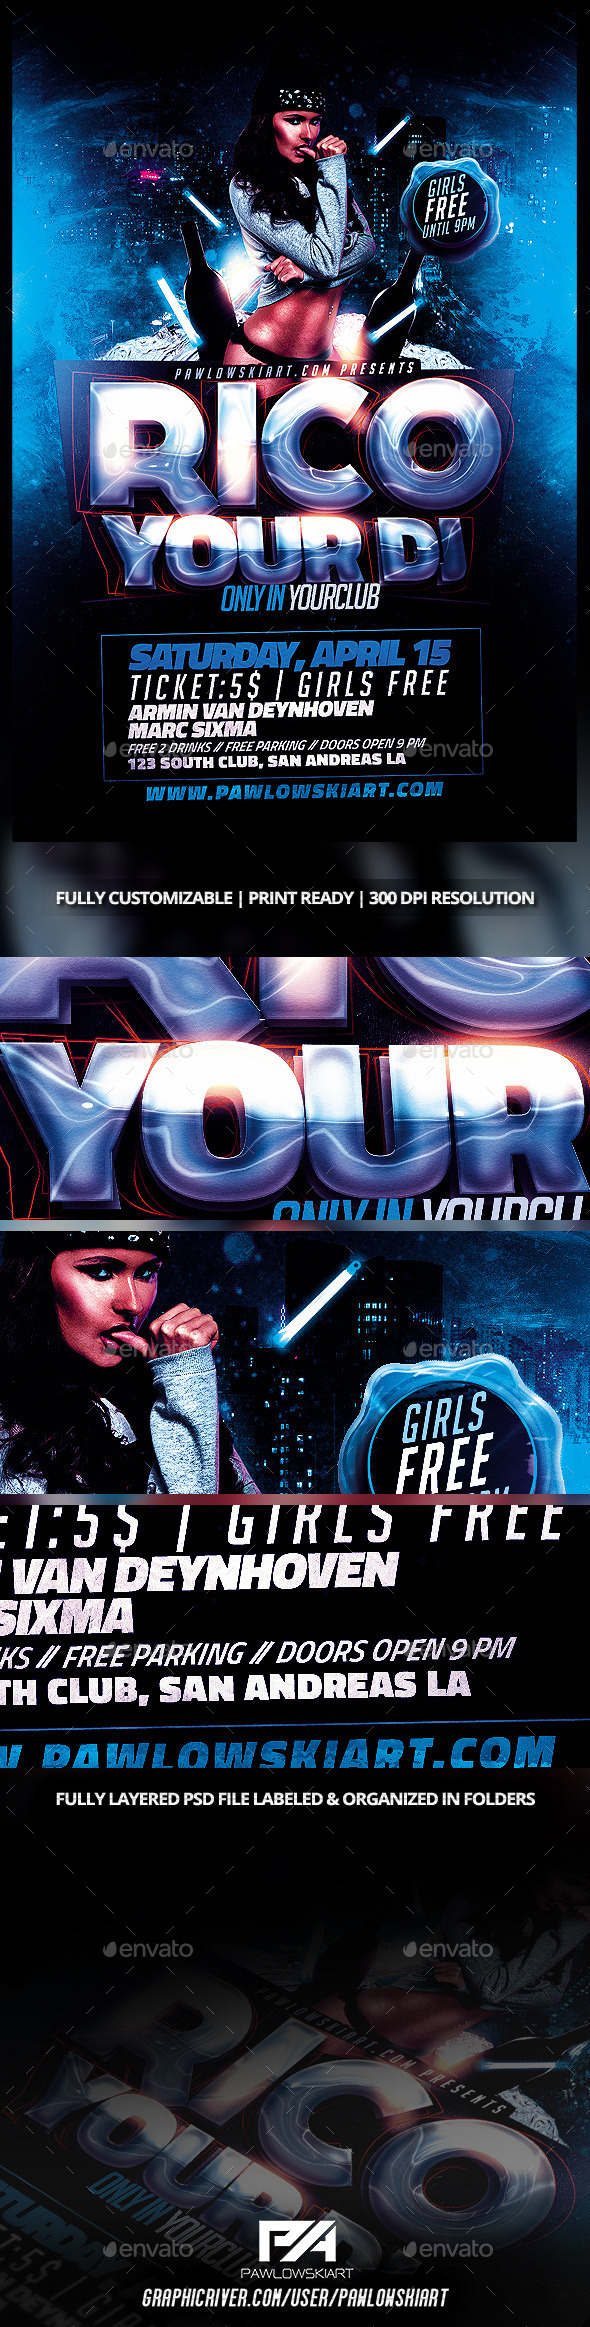 Electro House DJ Flyer Template - Clubs & Parties Events